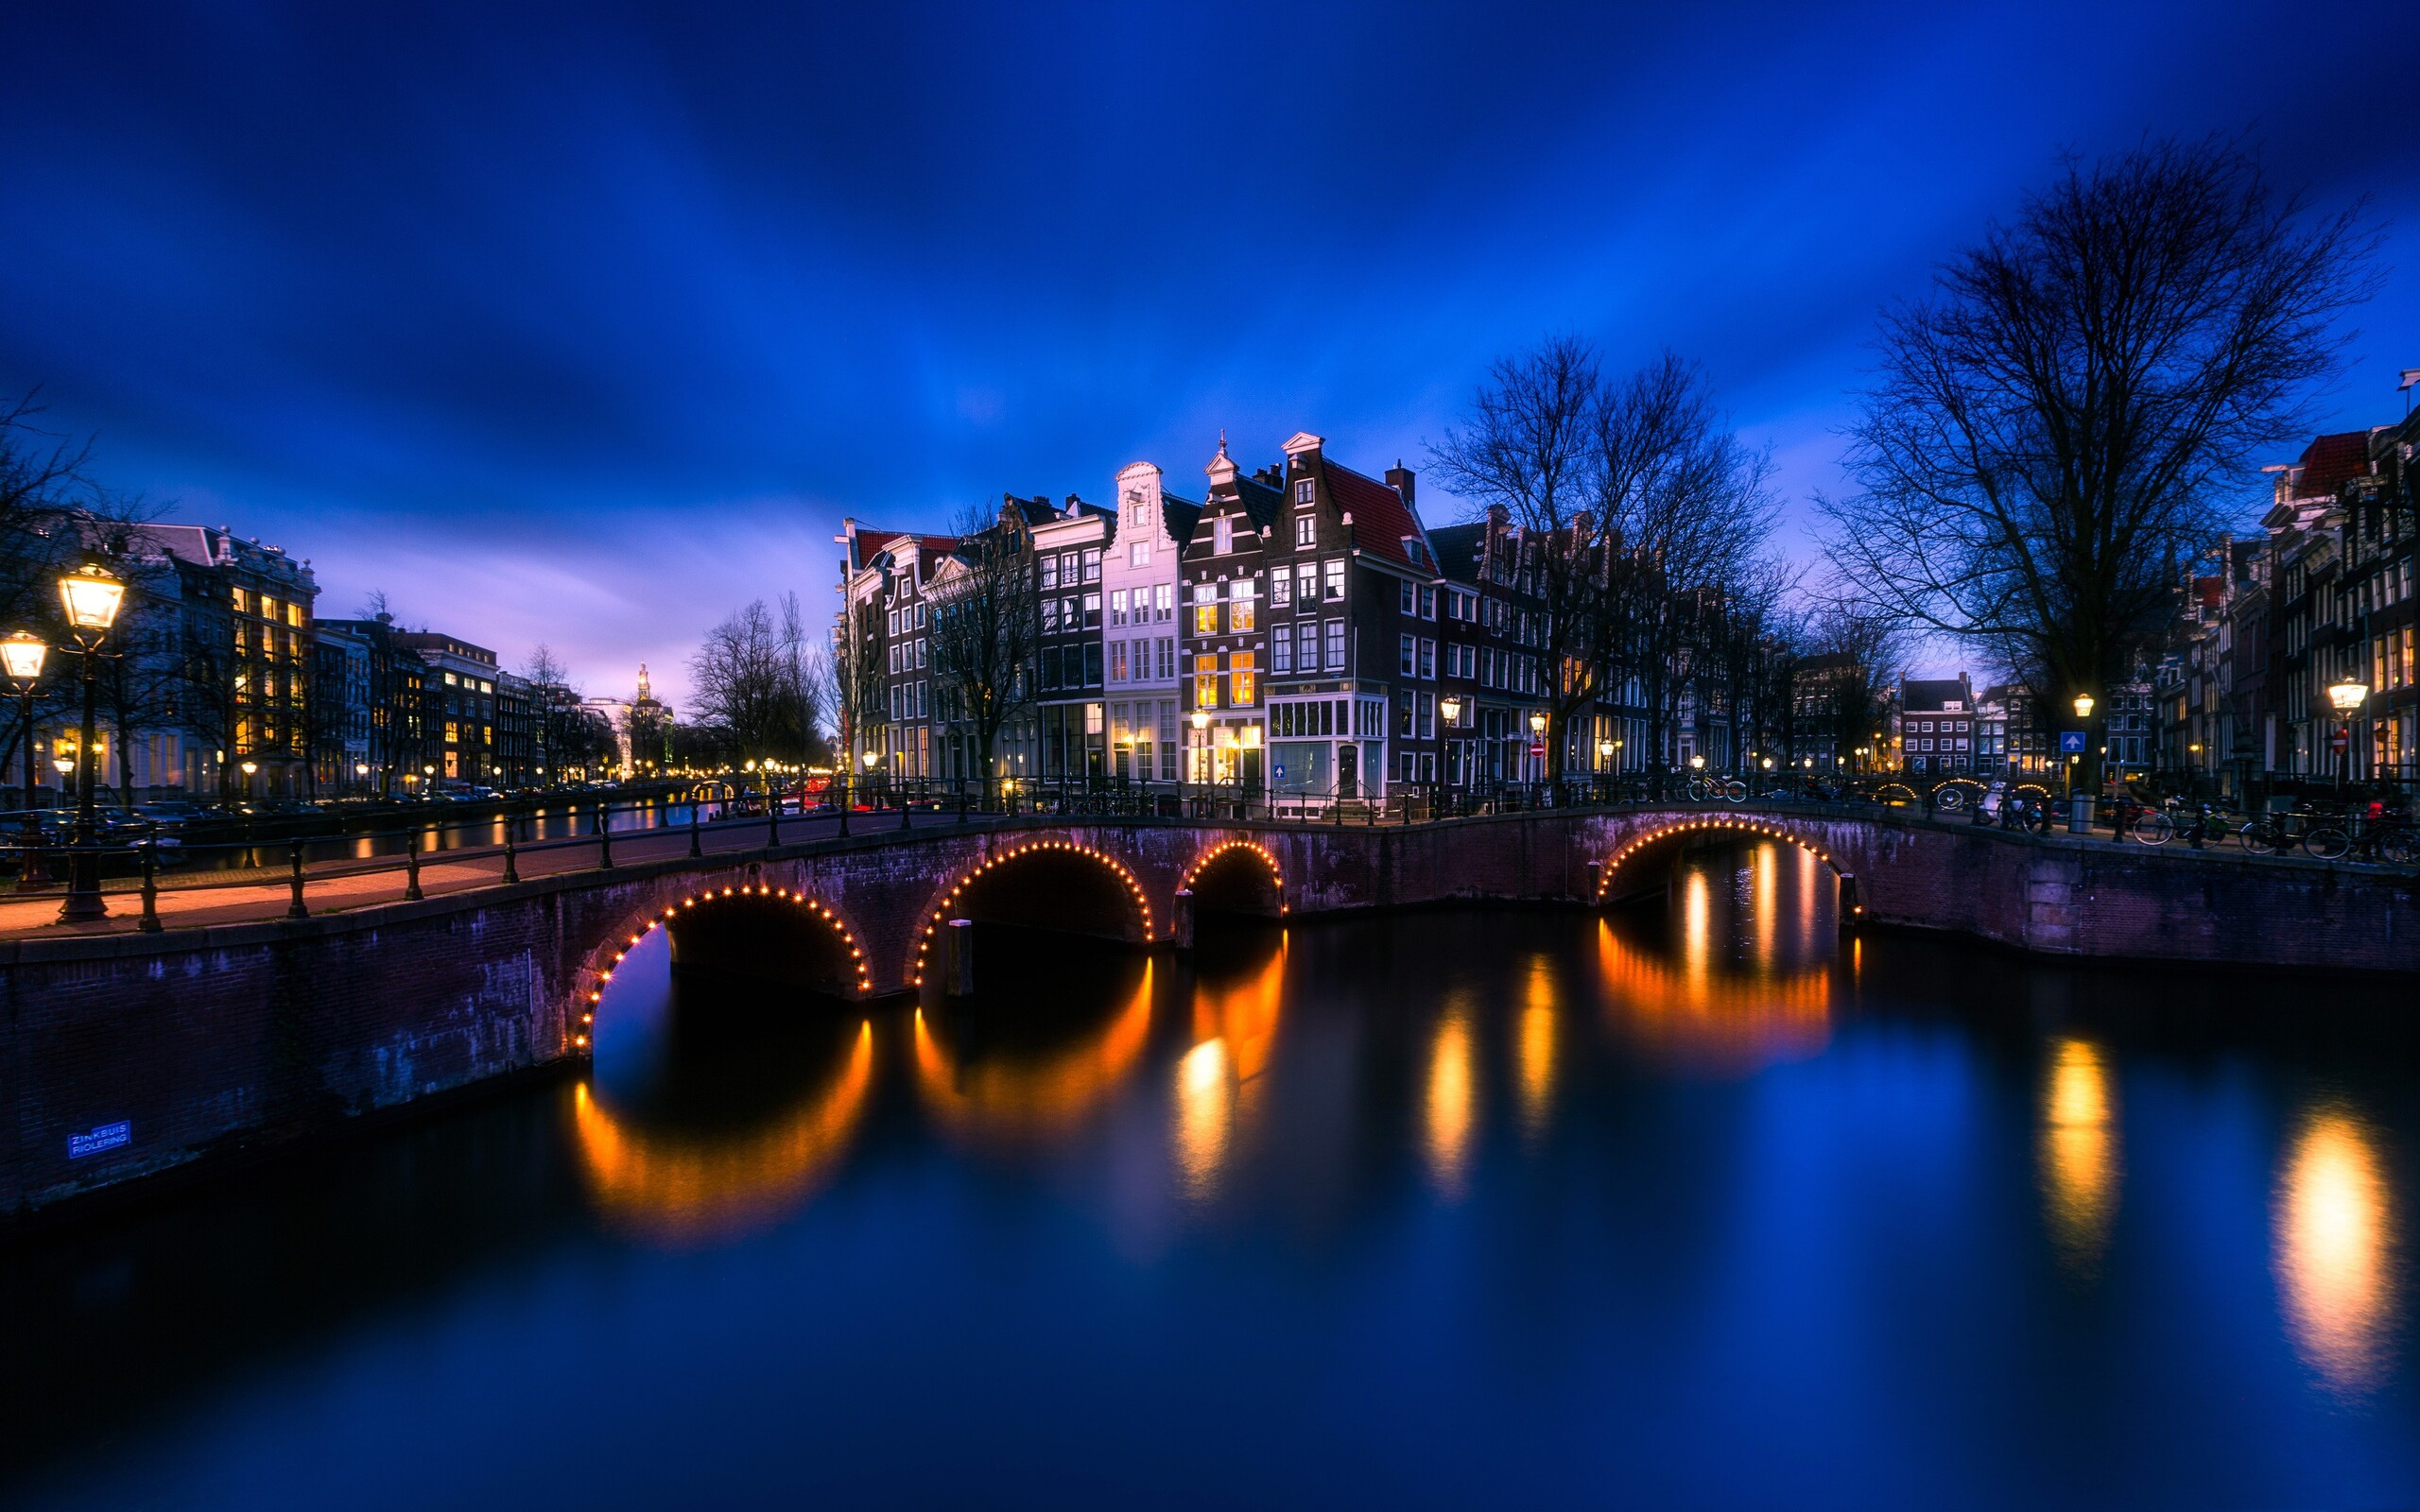 amsterdam-bridge-street-light-long-exposure-4k-fr.jpg